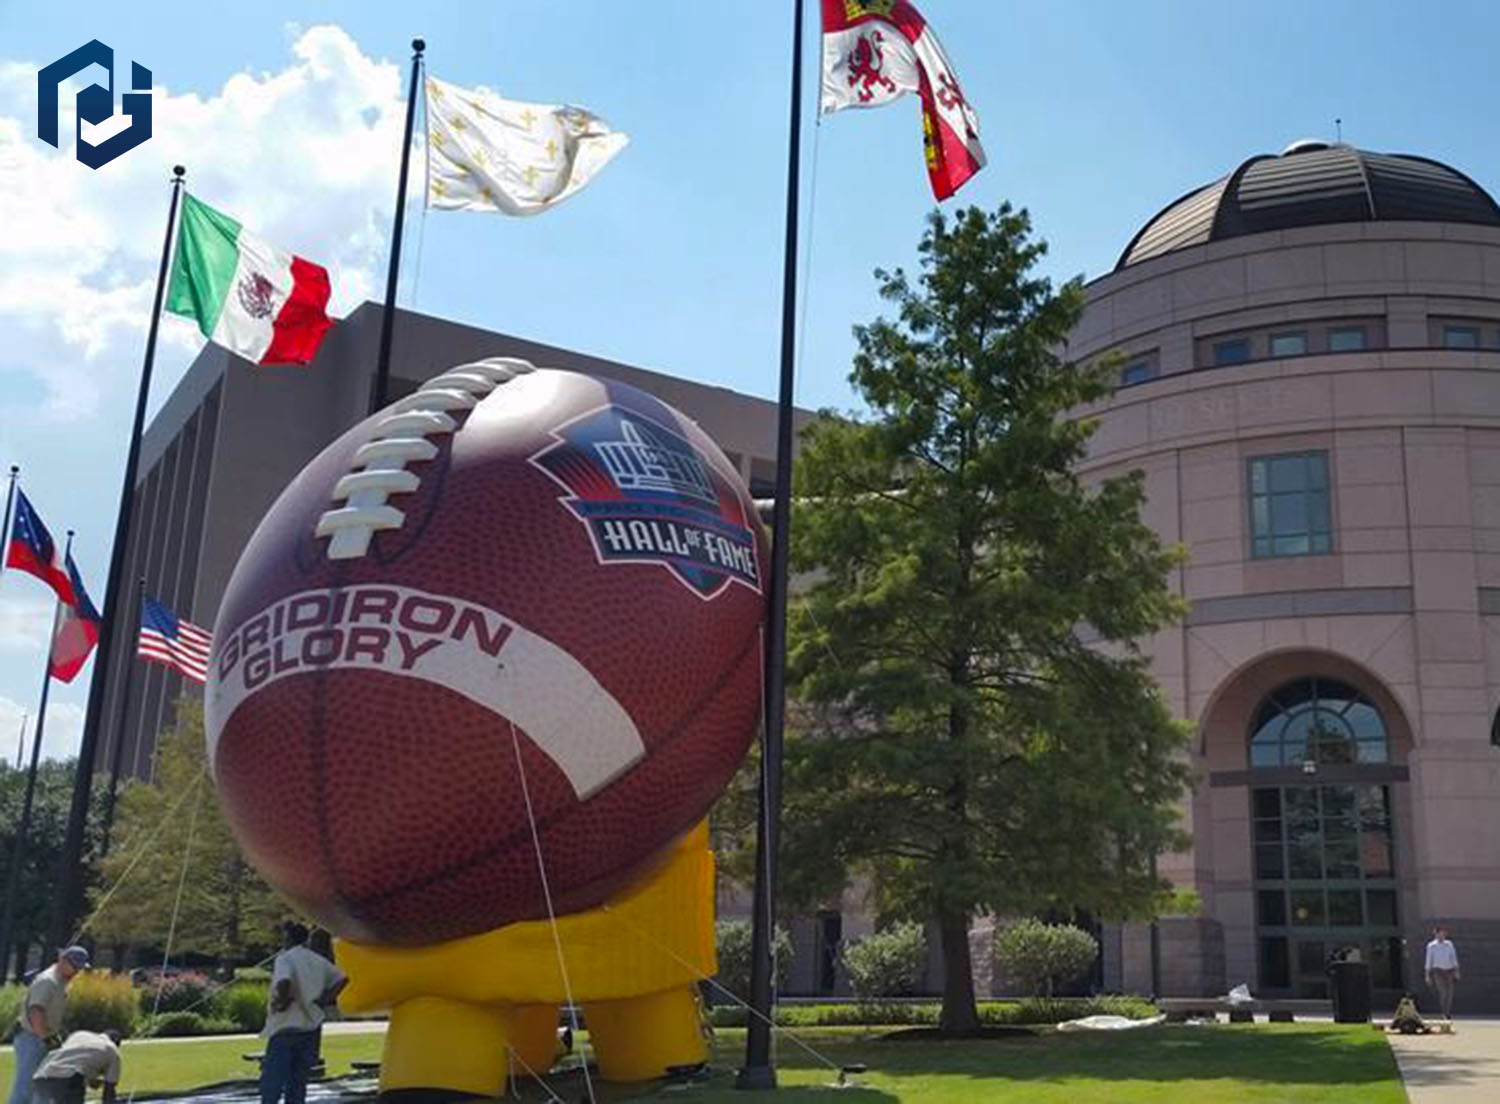 inflatable football prop union station logo